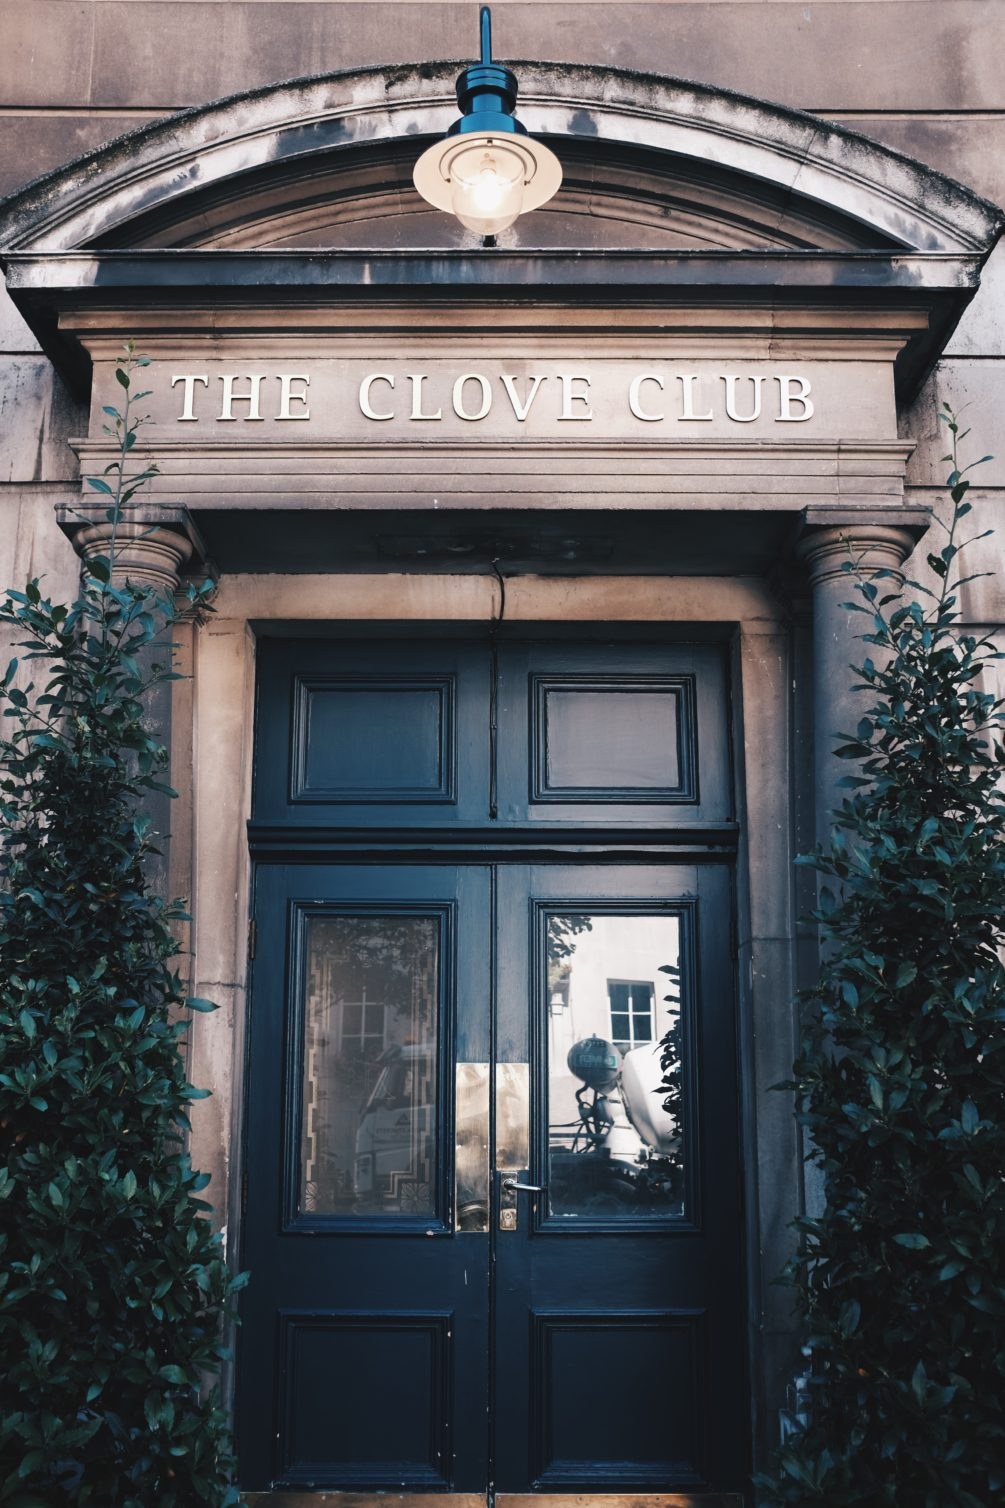 clove club, housed in the shoreditch town hall